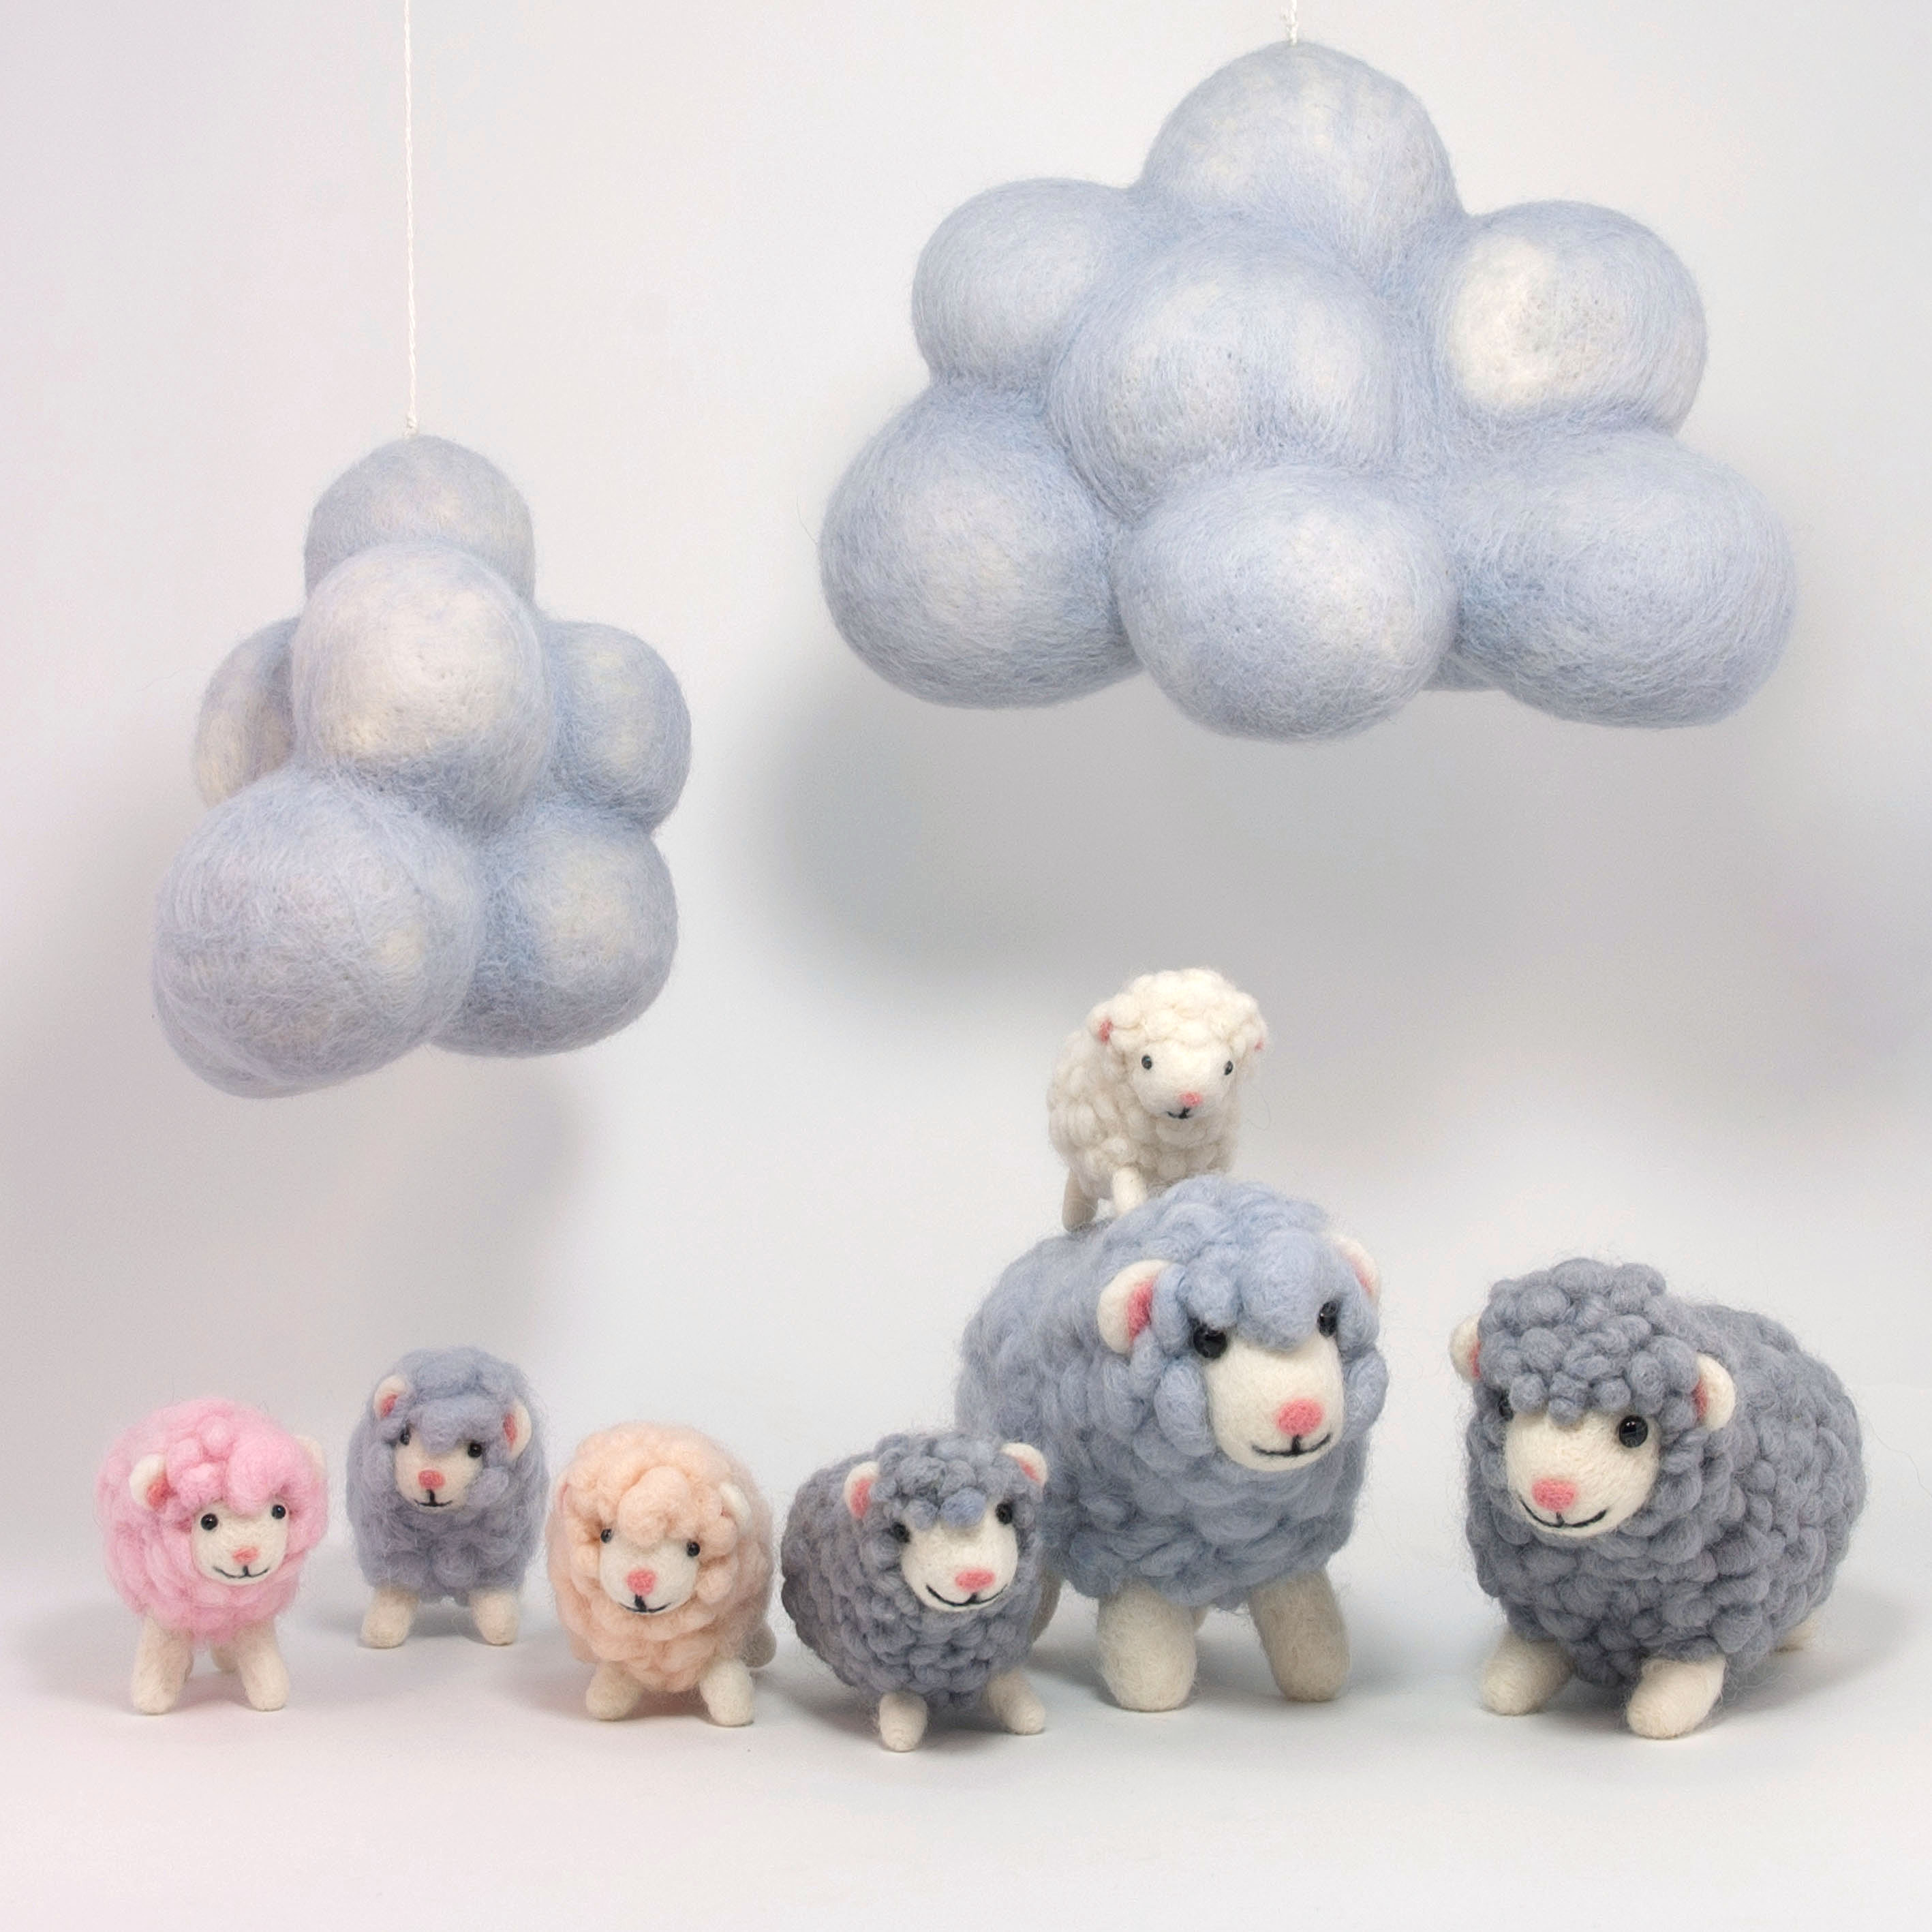 Needle felting workshop to learn how to make spring lambs